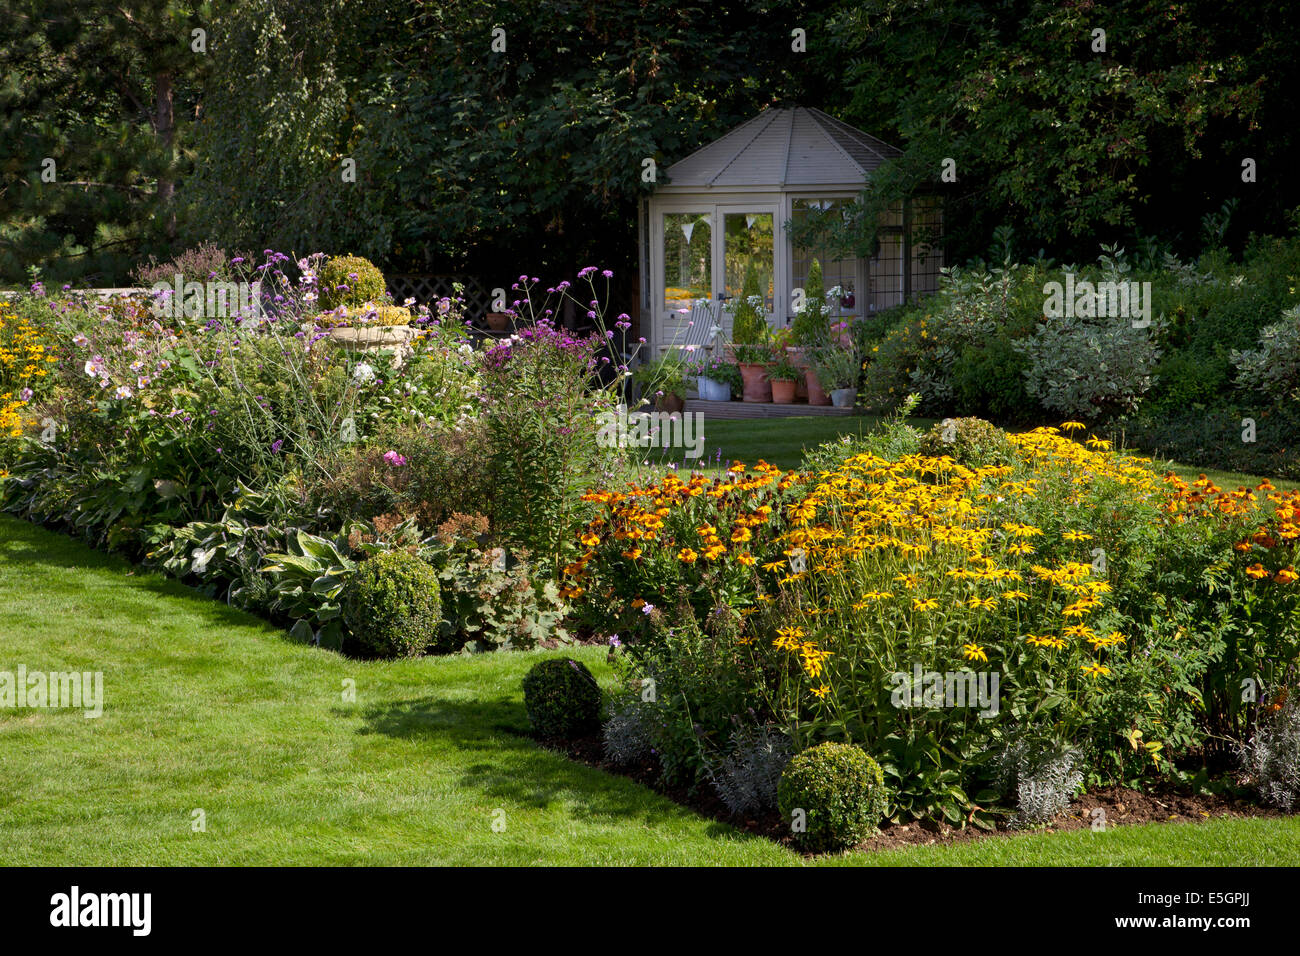 Wooden Summerhouse with colourful late summer flower boarders in English garden,Oxfordshire,England - Stock Image